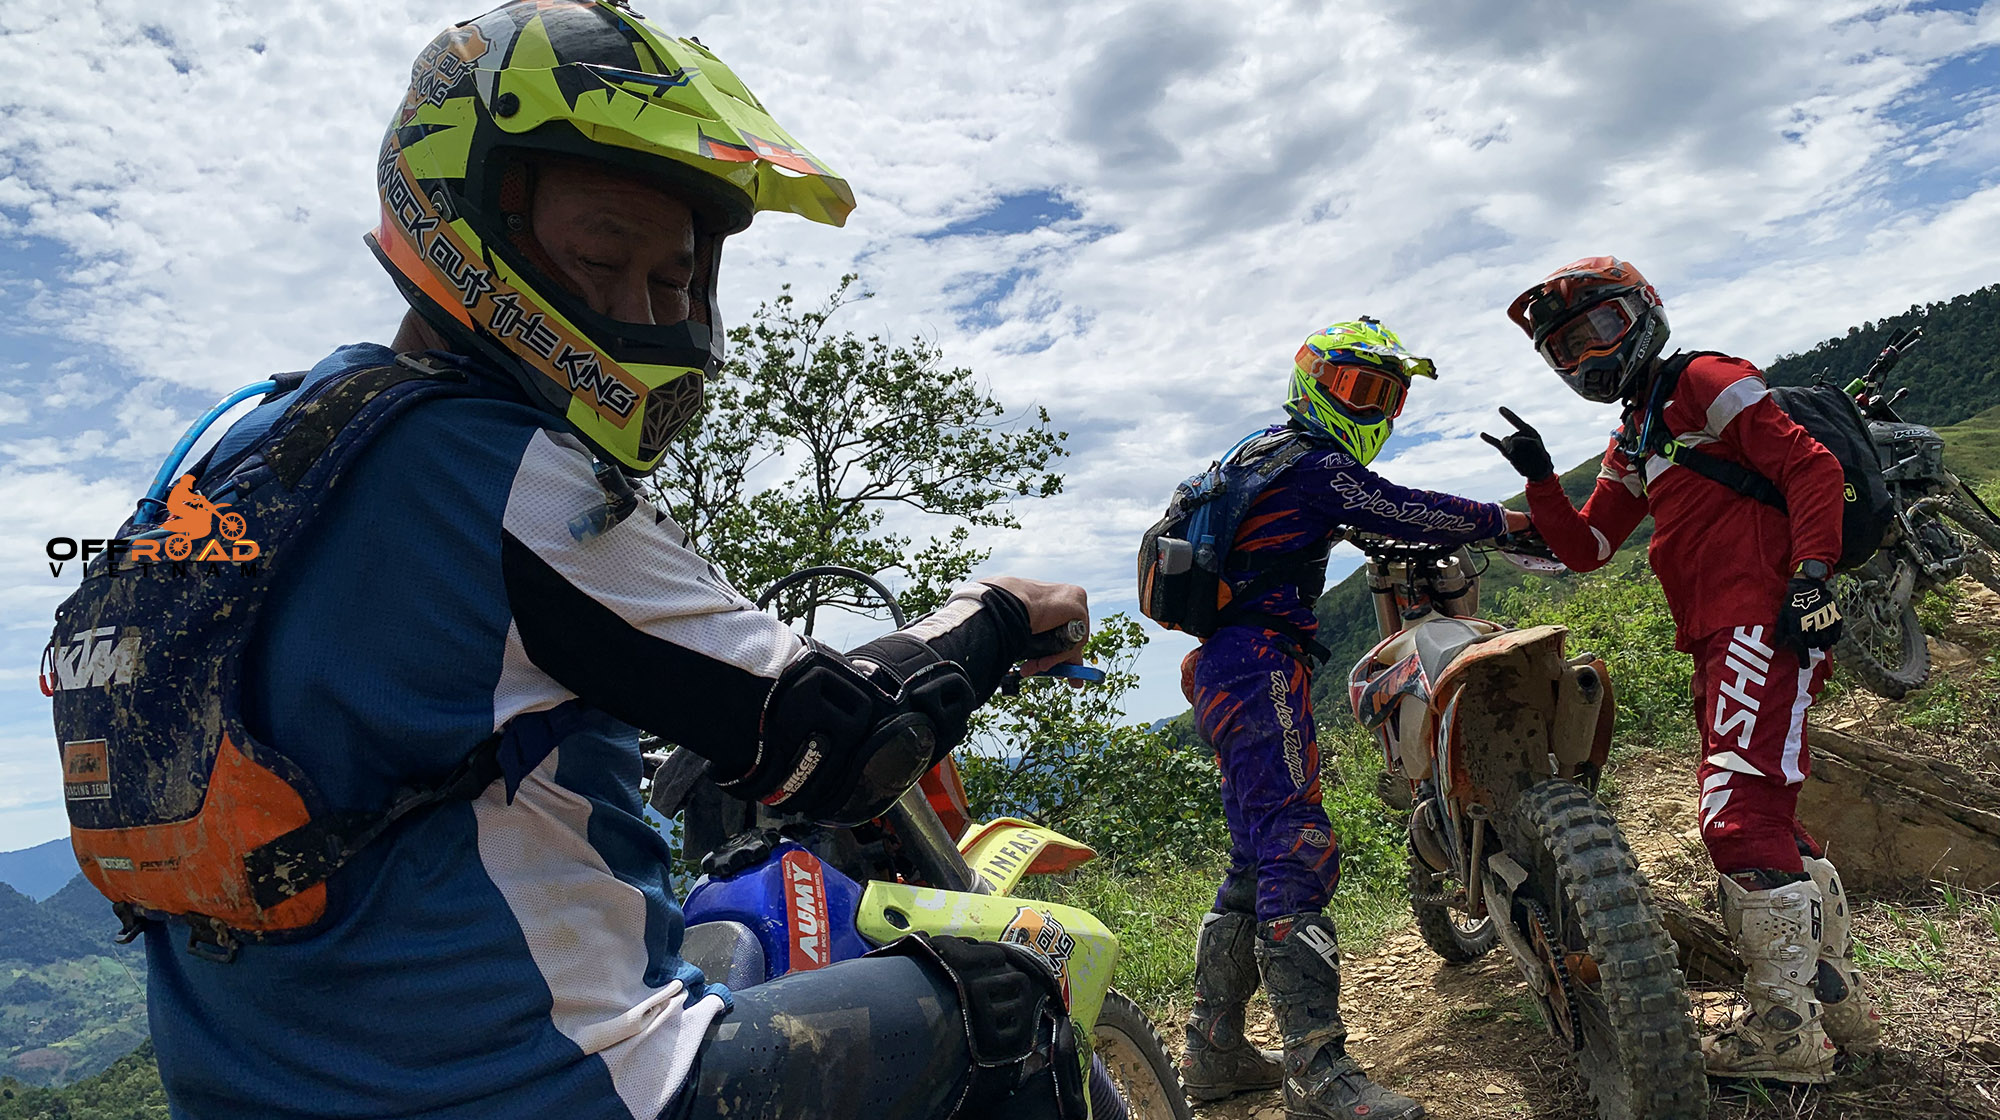 Join a group and have fun on a Vietnam motorbike tour